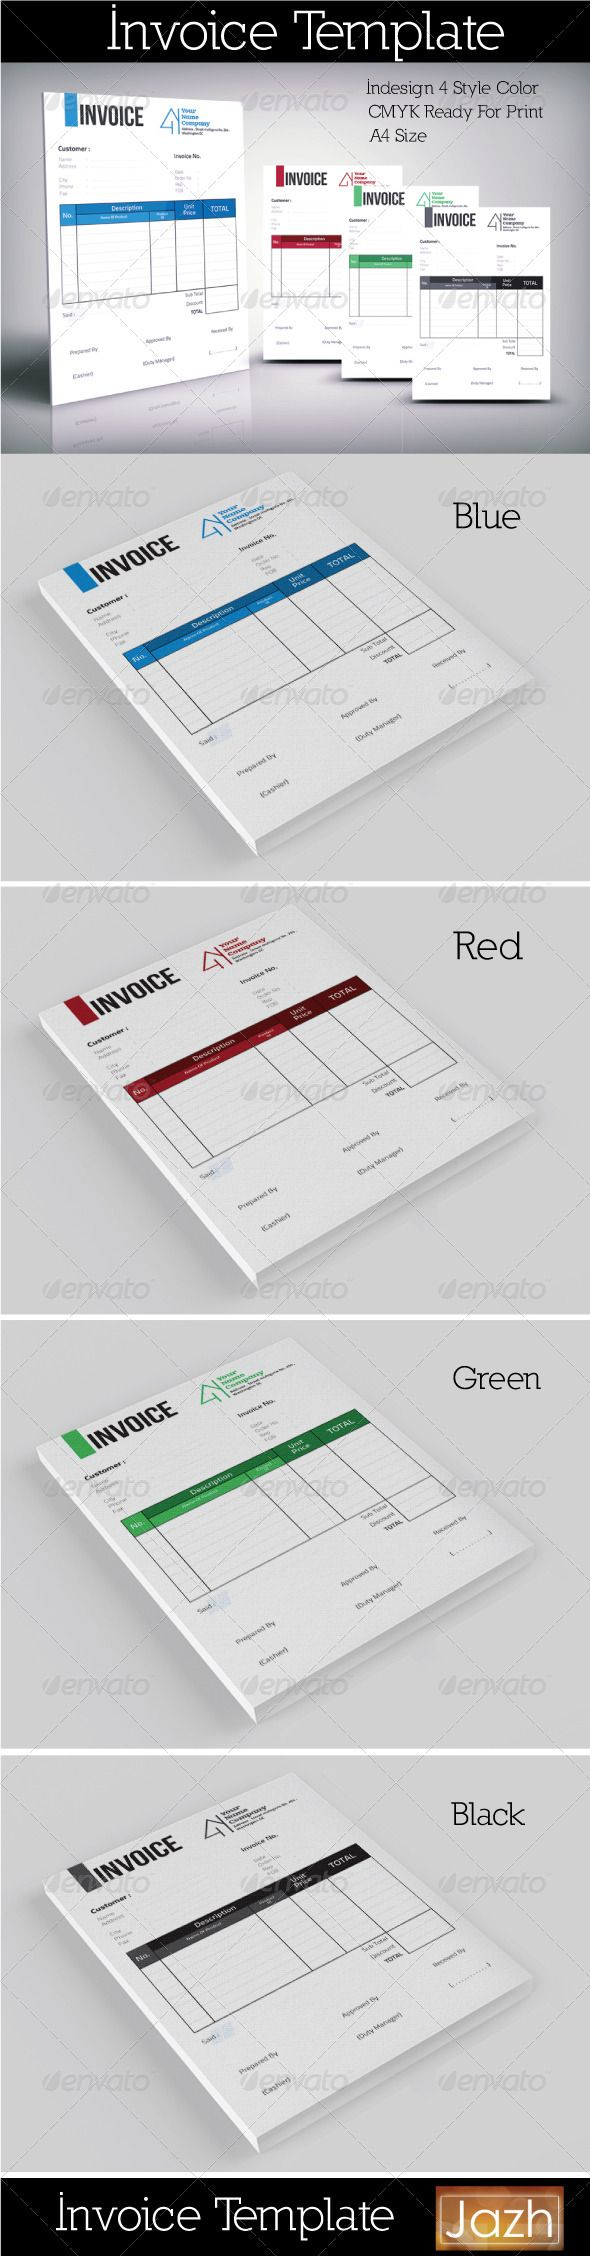 Invoice Template Clean